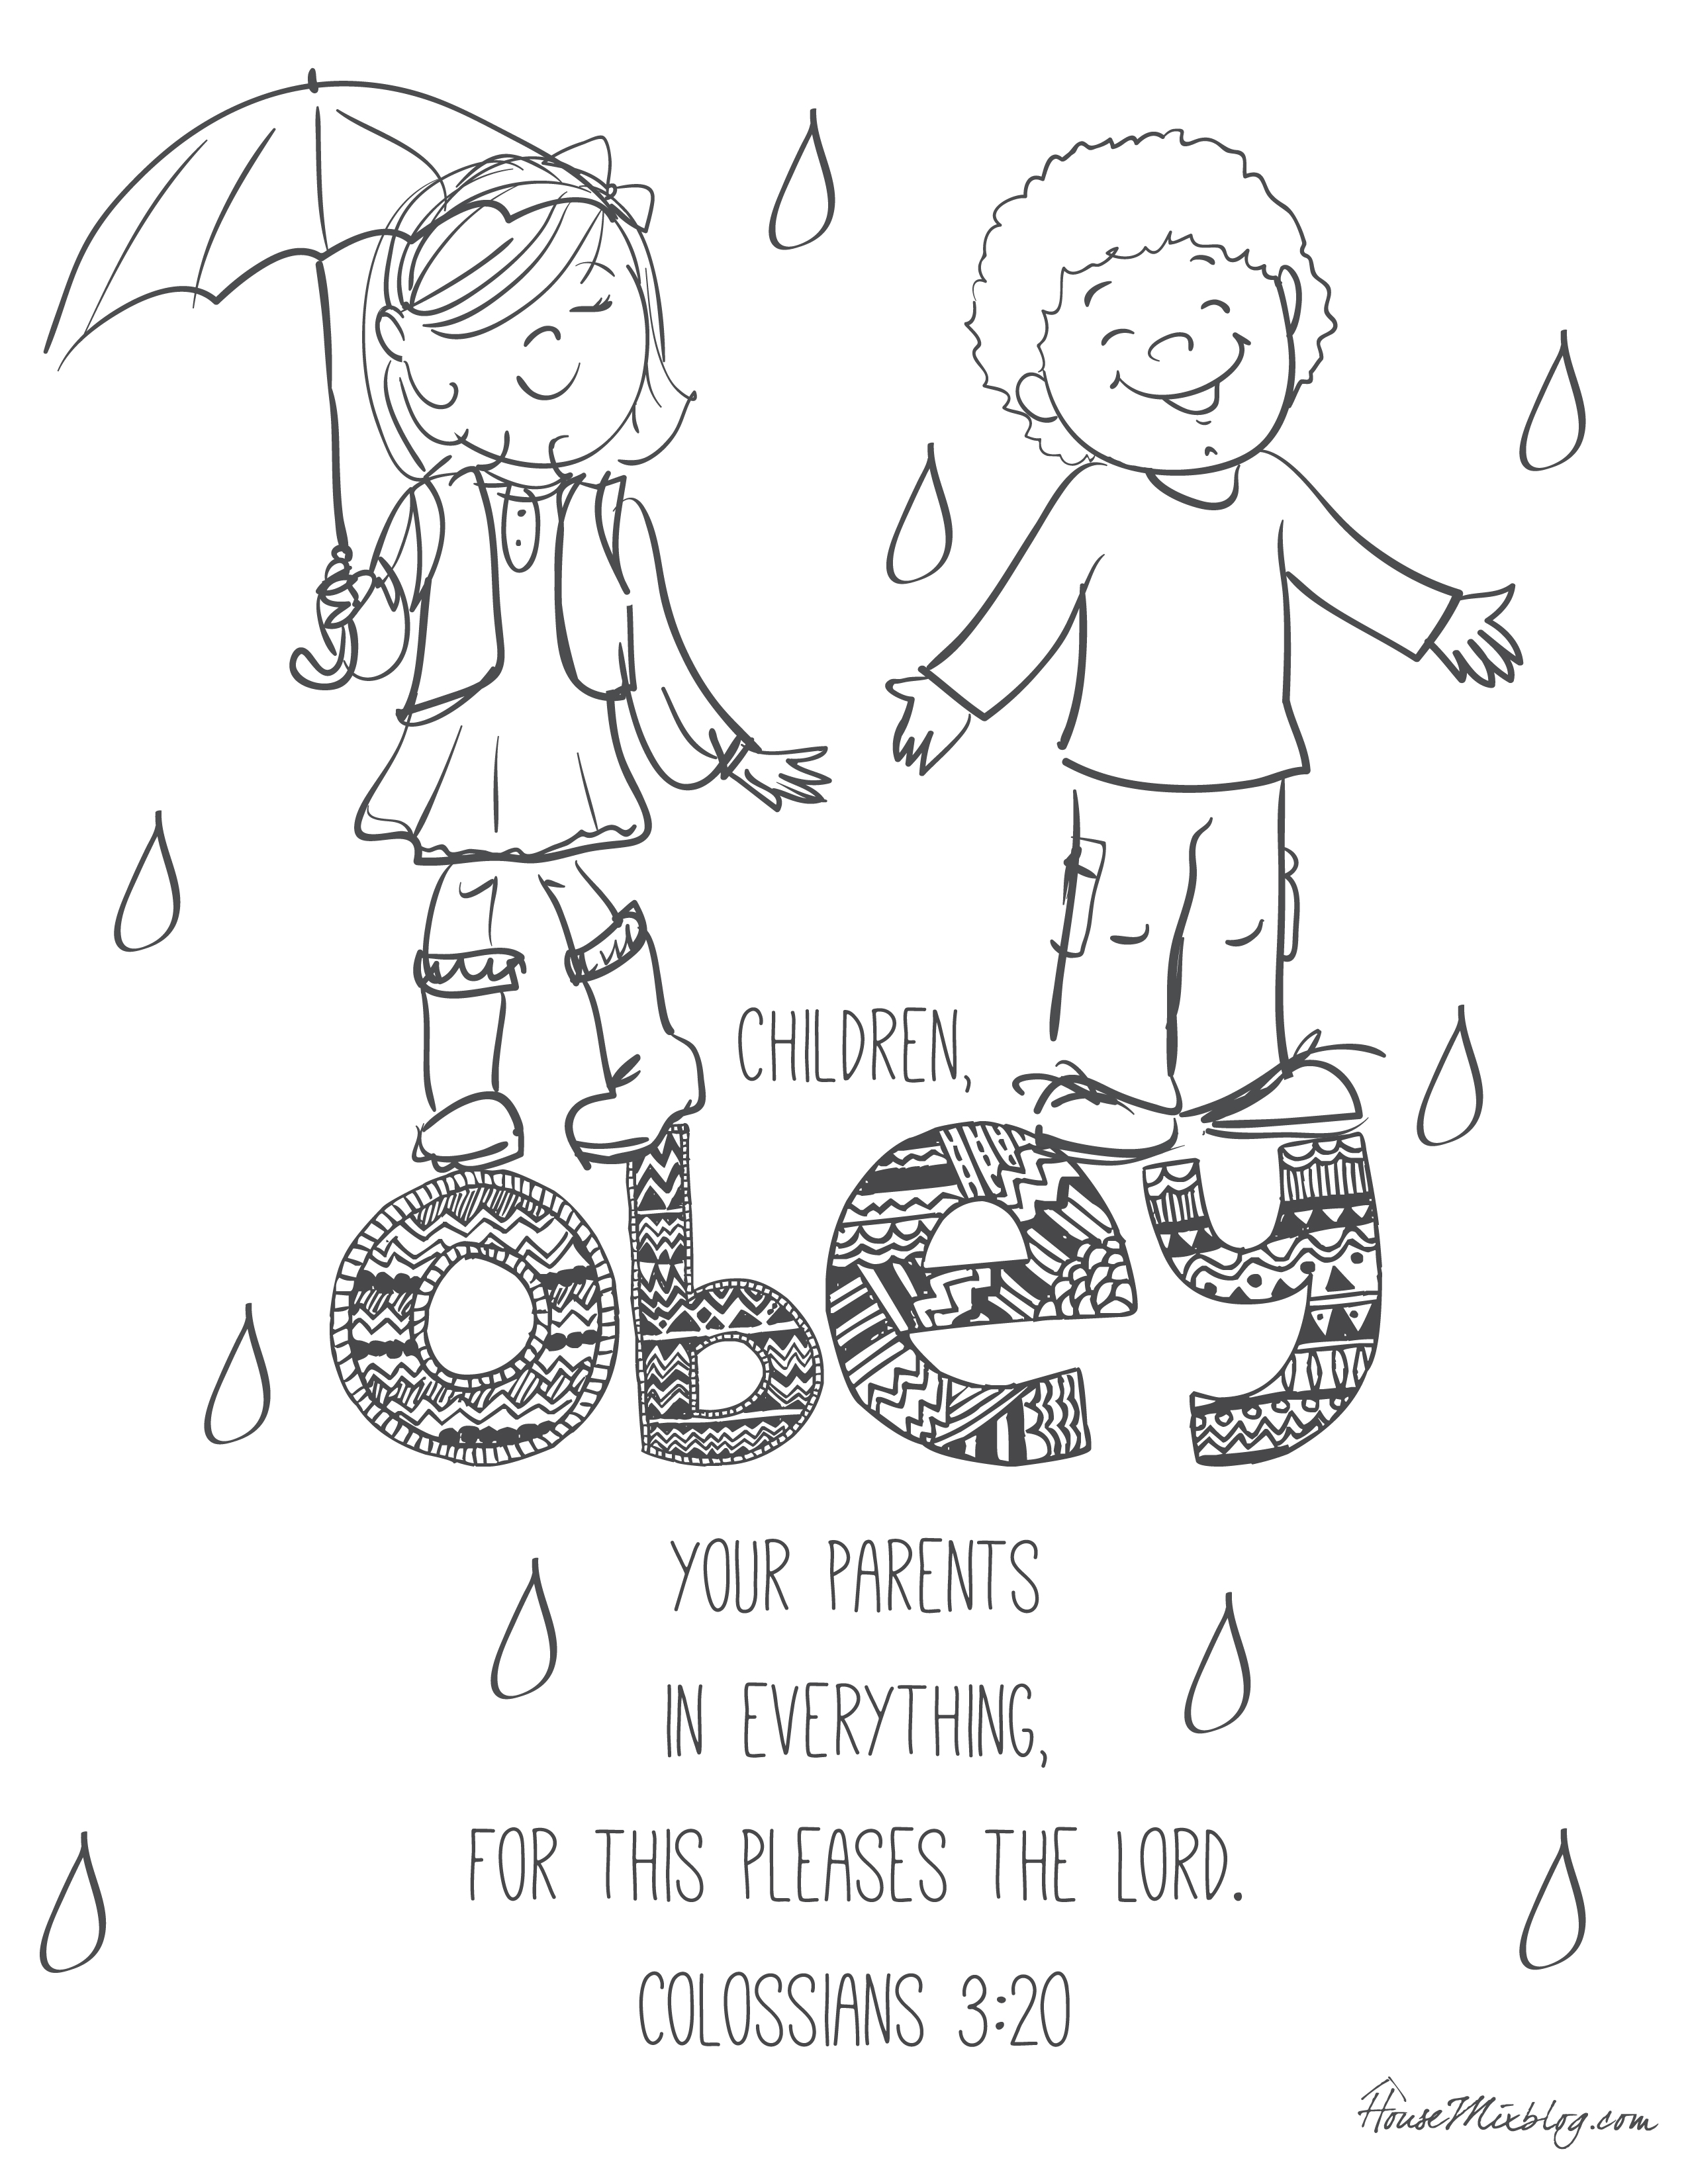 free printable bible coloring pages for children glorious jesus coloring bible coloring free printable printable coloring for children bible pages free